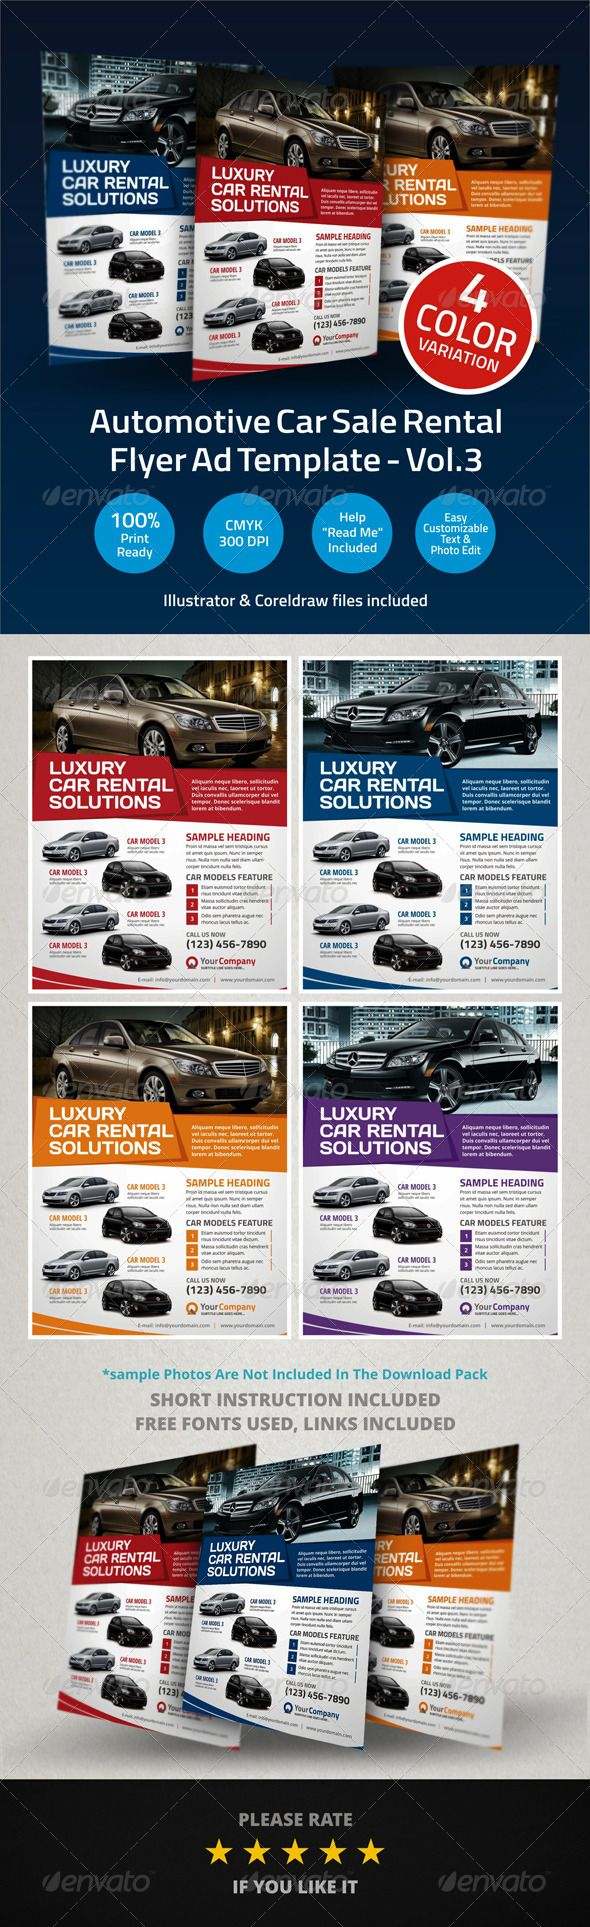 41 best Car Dealer Flyer DIY images on Pinterest Posters